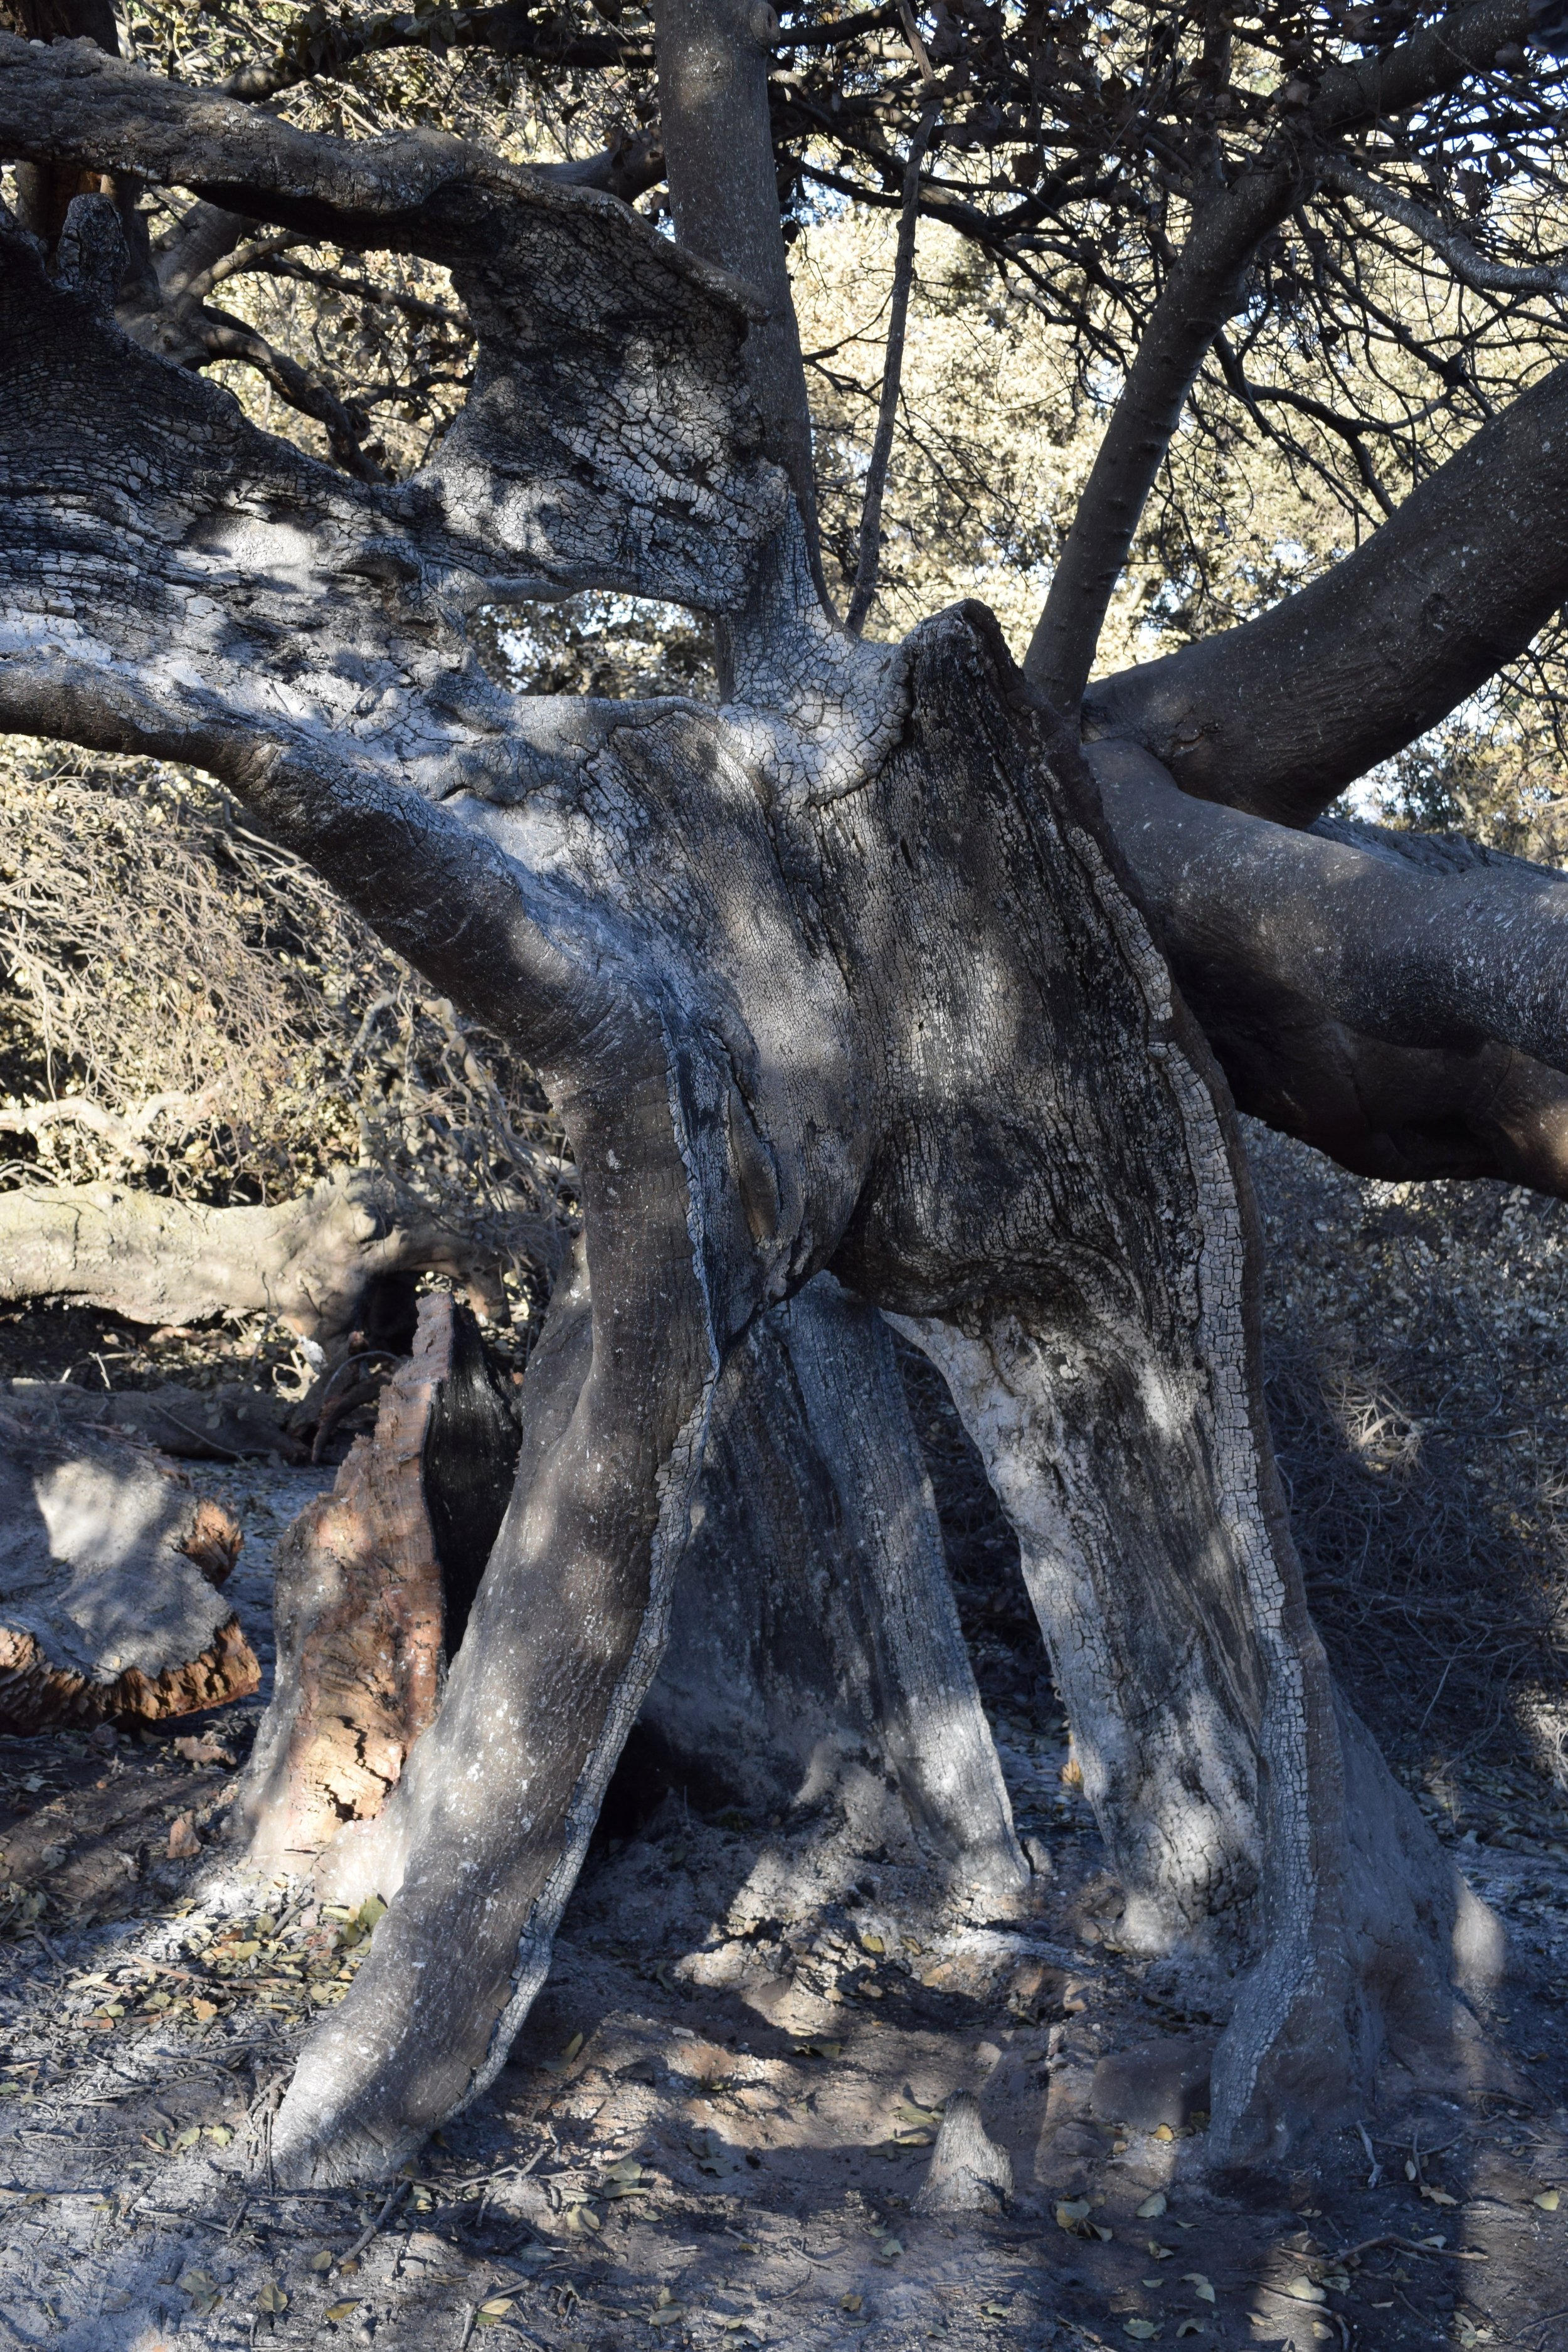 THE BURNED TRUNK of Baba's Tree at Meher Mount after being struck by two fires — the New Life Fire in October 1985 and the Thomas Fire in 2017. (Photo: Eric Turk, December 2017)